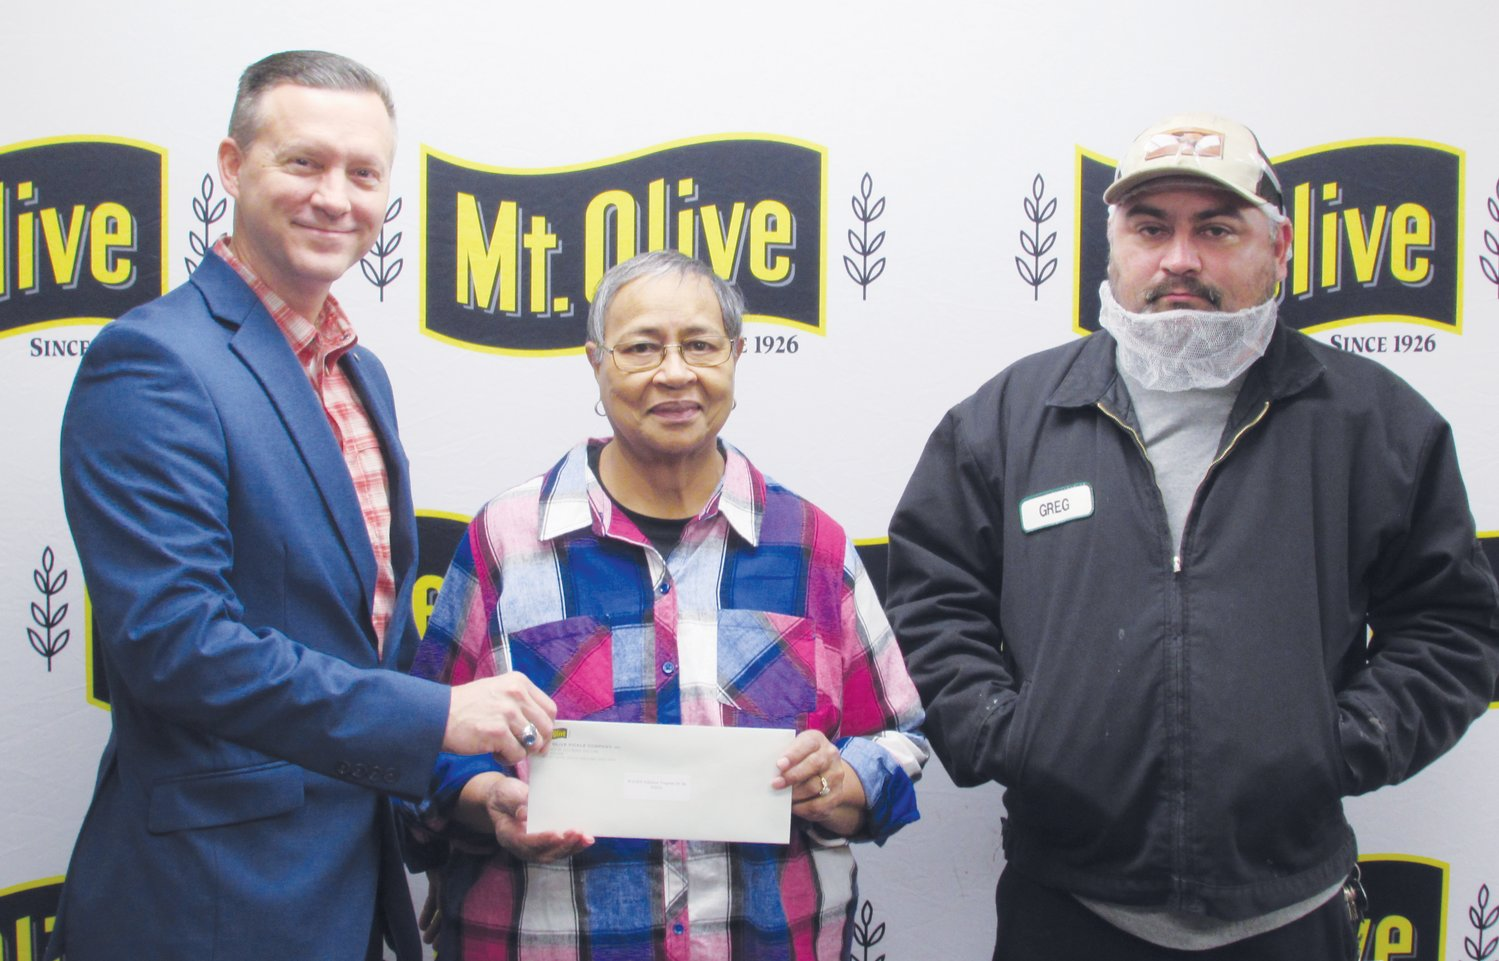 Mt. Olive Pickle Company's Employees Community Fund Chairman Patrick Muston, left, presents a check for $2,500 to Lauren Holliday, manager of WAGES Nutrition Center. Also pictured is Mt. Olive Pickle Employee Community Fund member Greg Martinez. The Employees Community Fund contributed a total of $149,263 to 52 organizations in 2019.